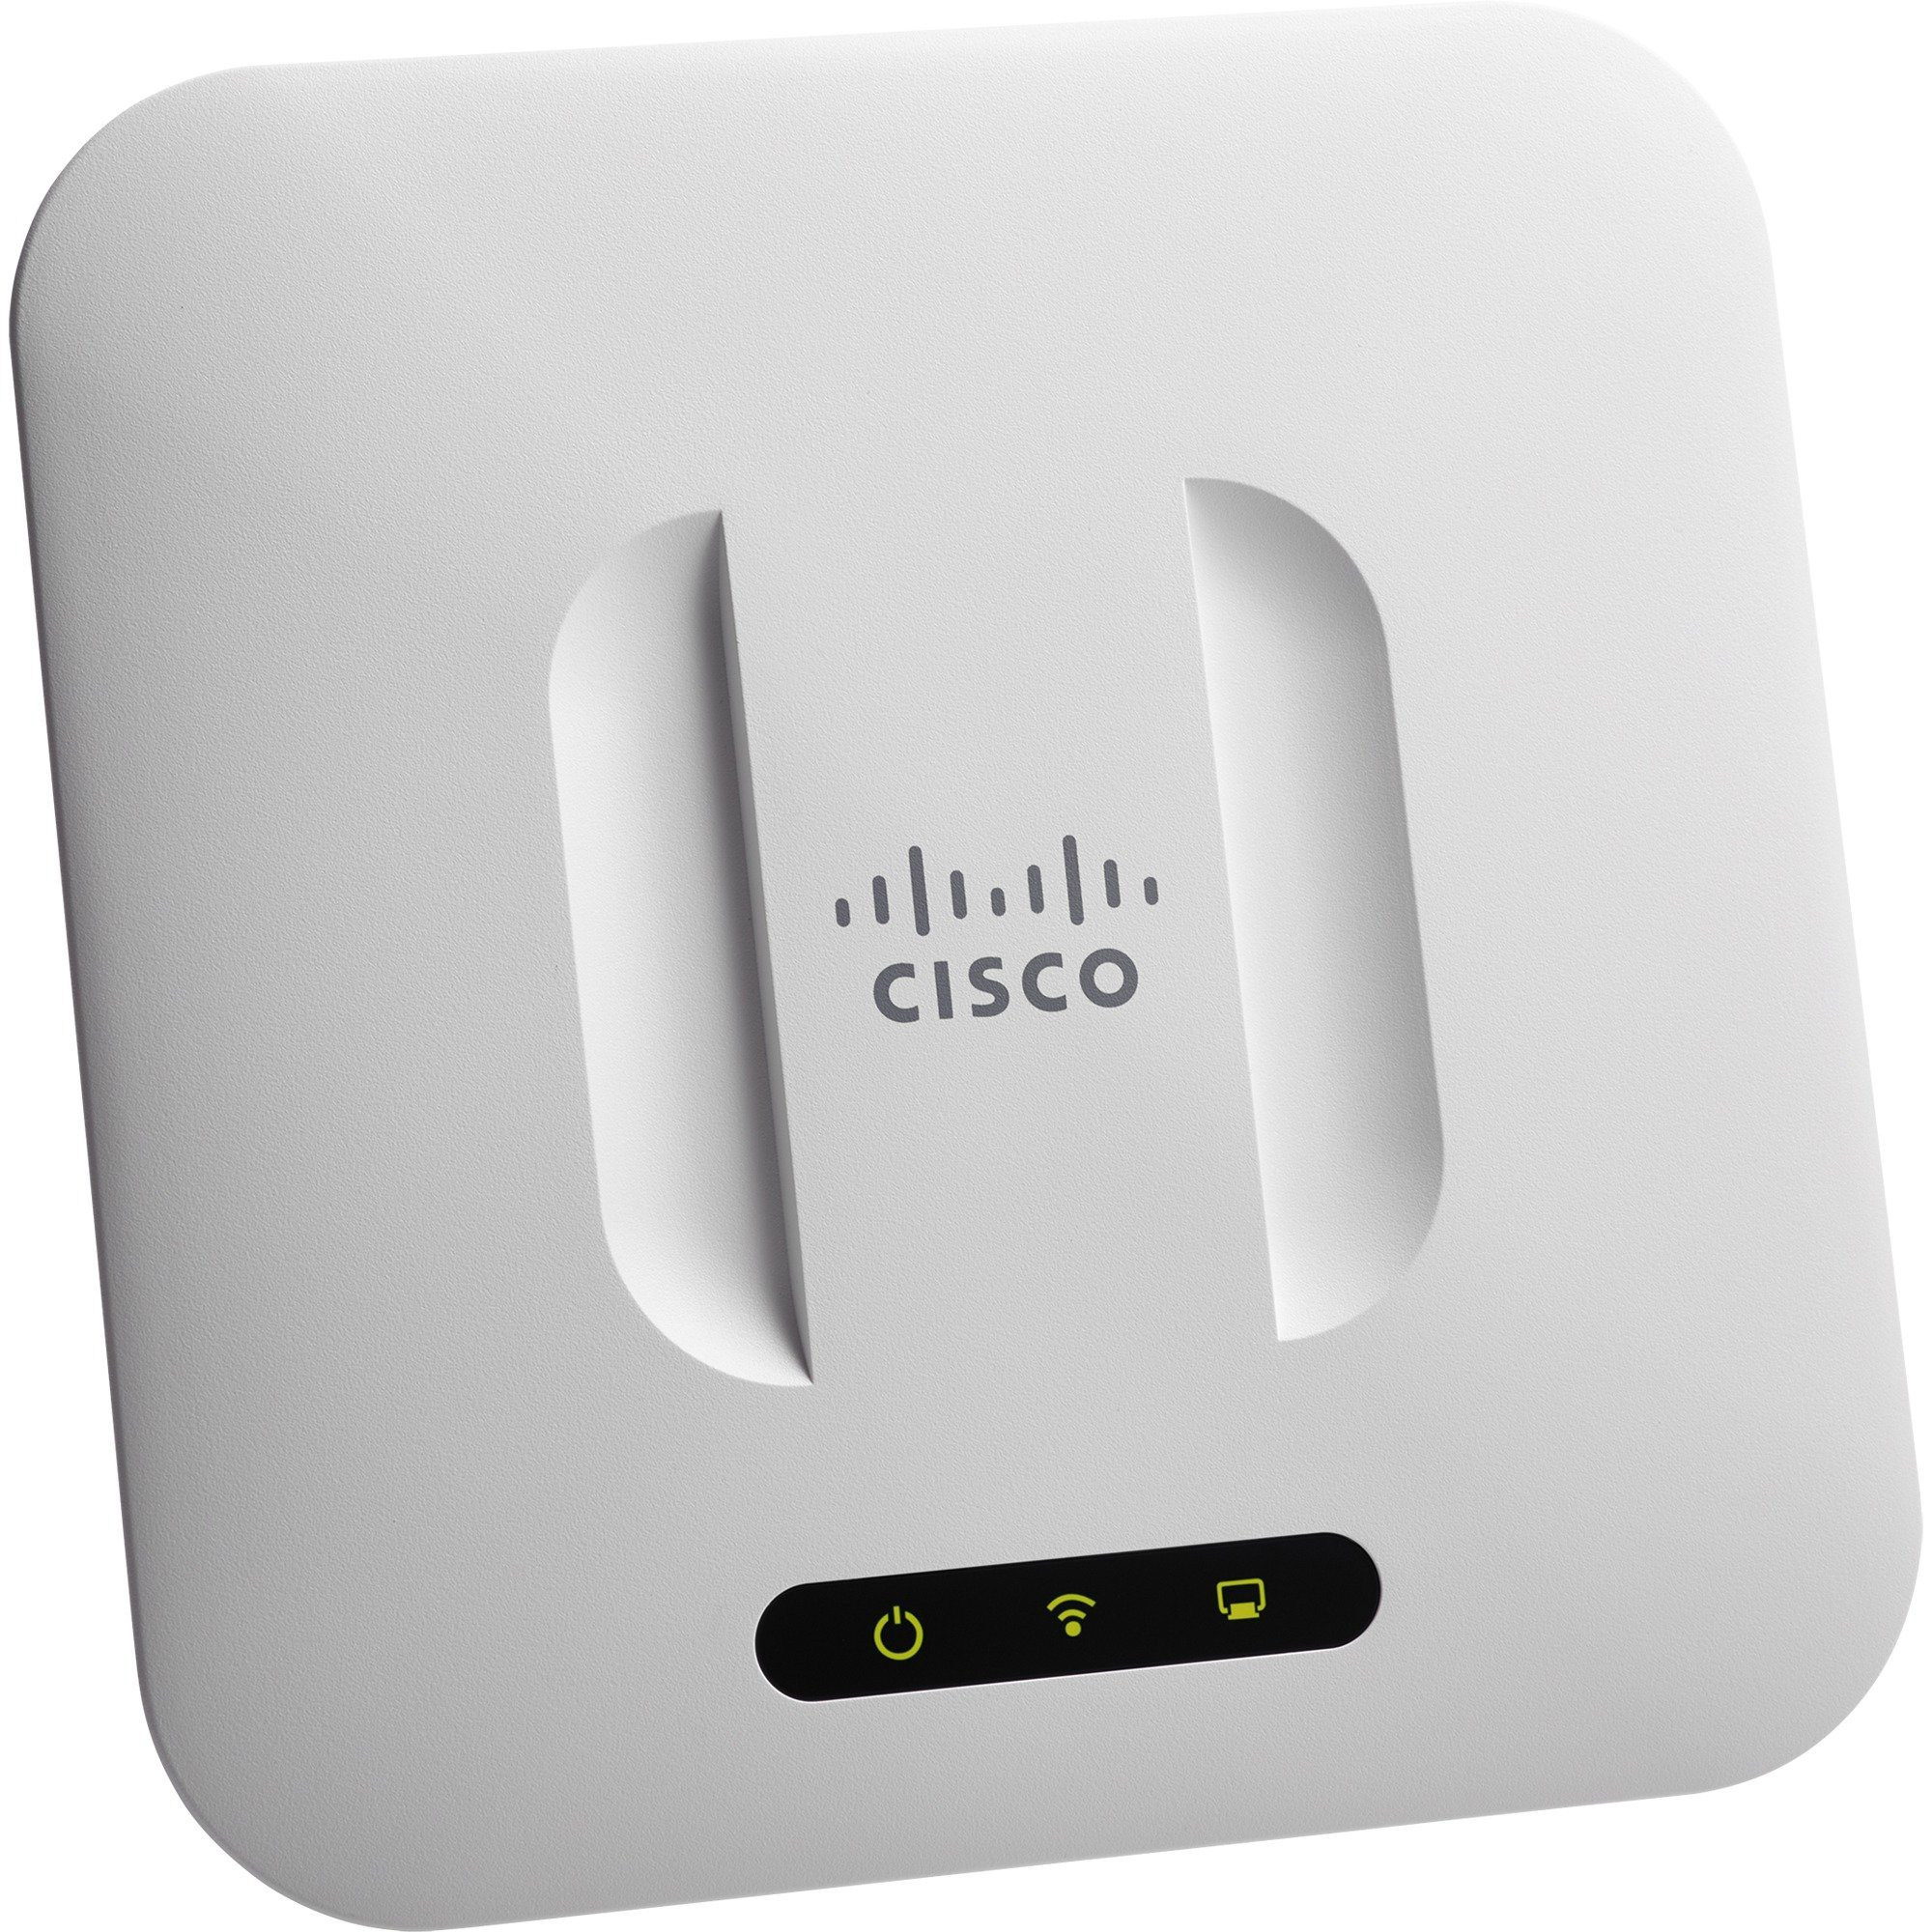 Cisco Access Point »WAP371«